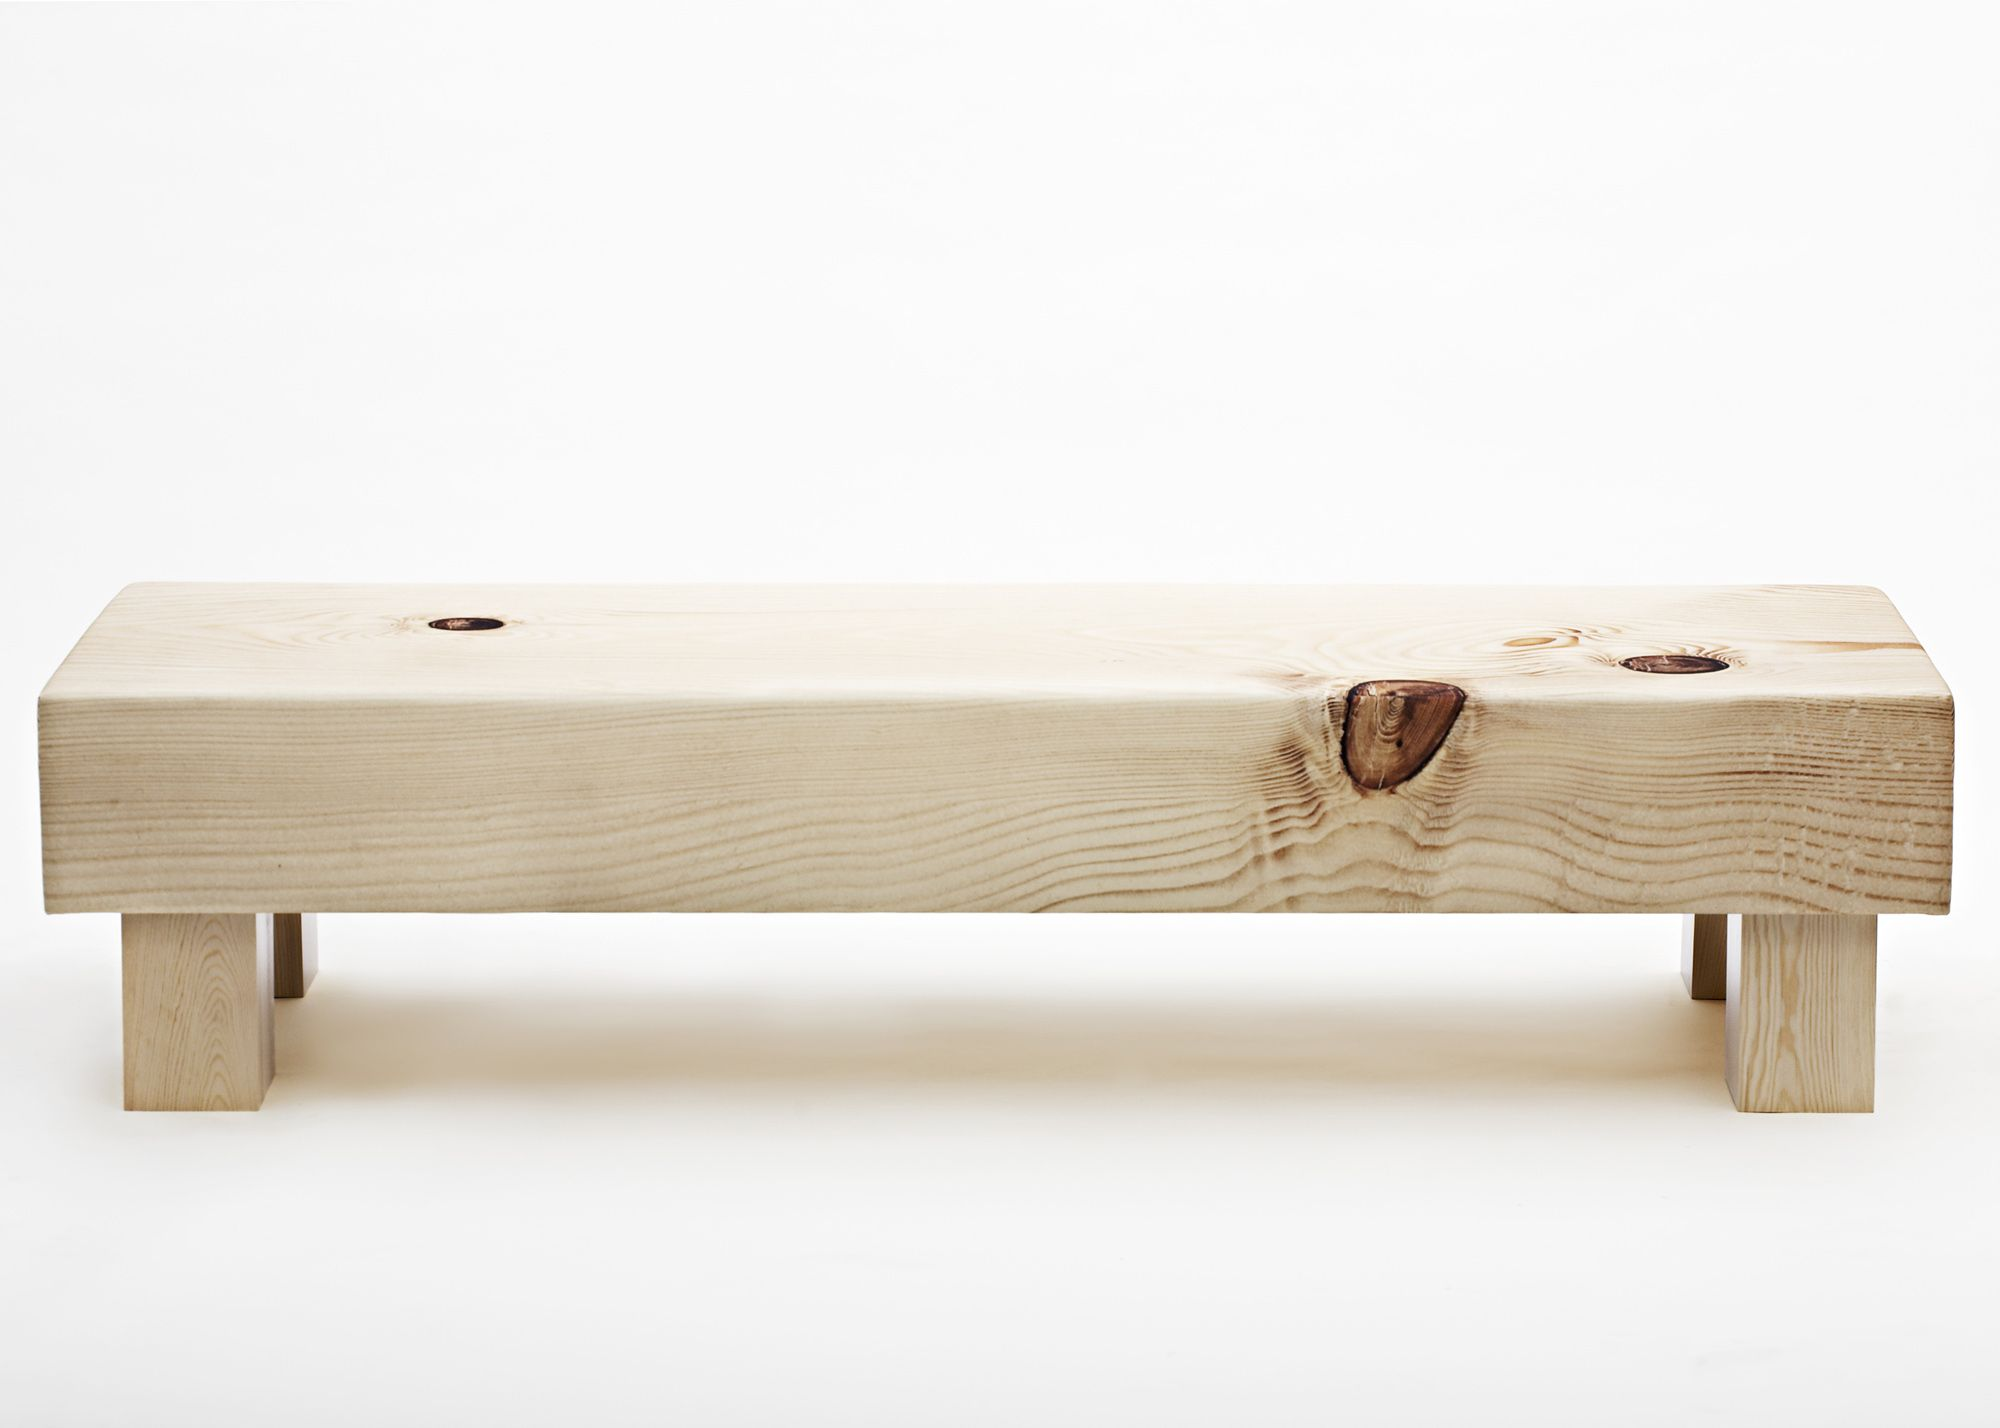 Wood Designs - Yahoo! Search Results